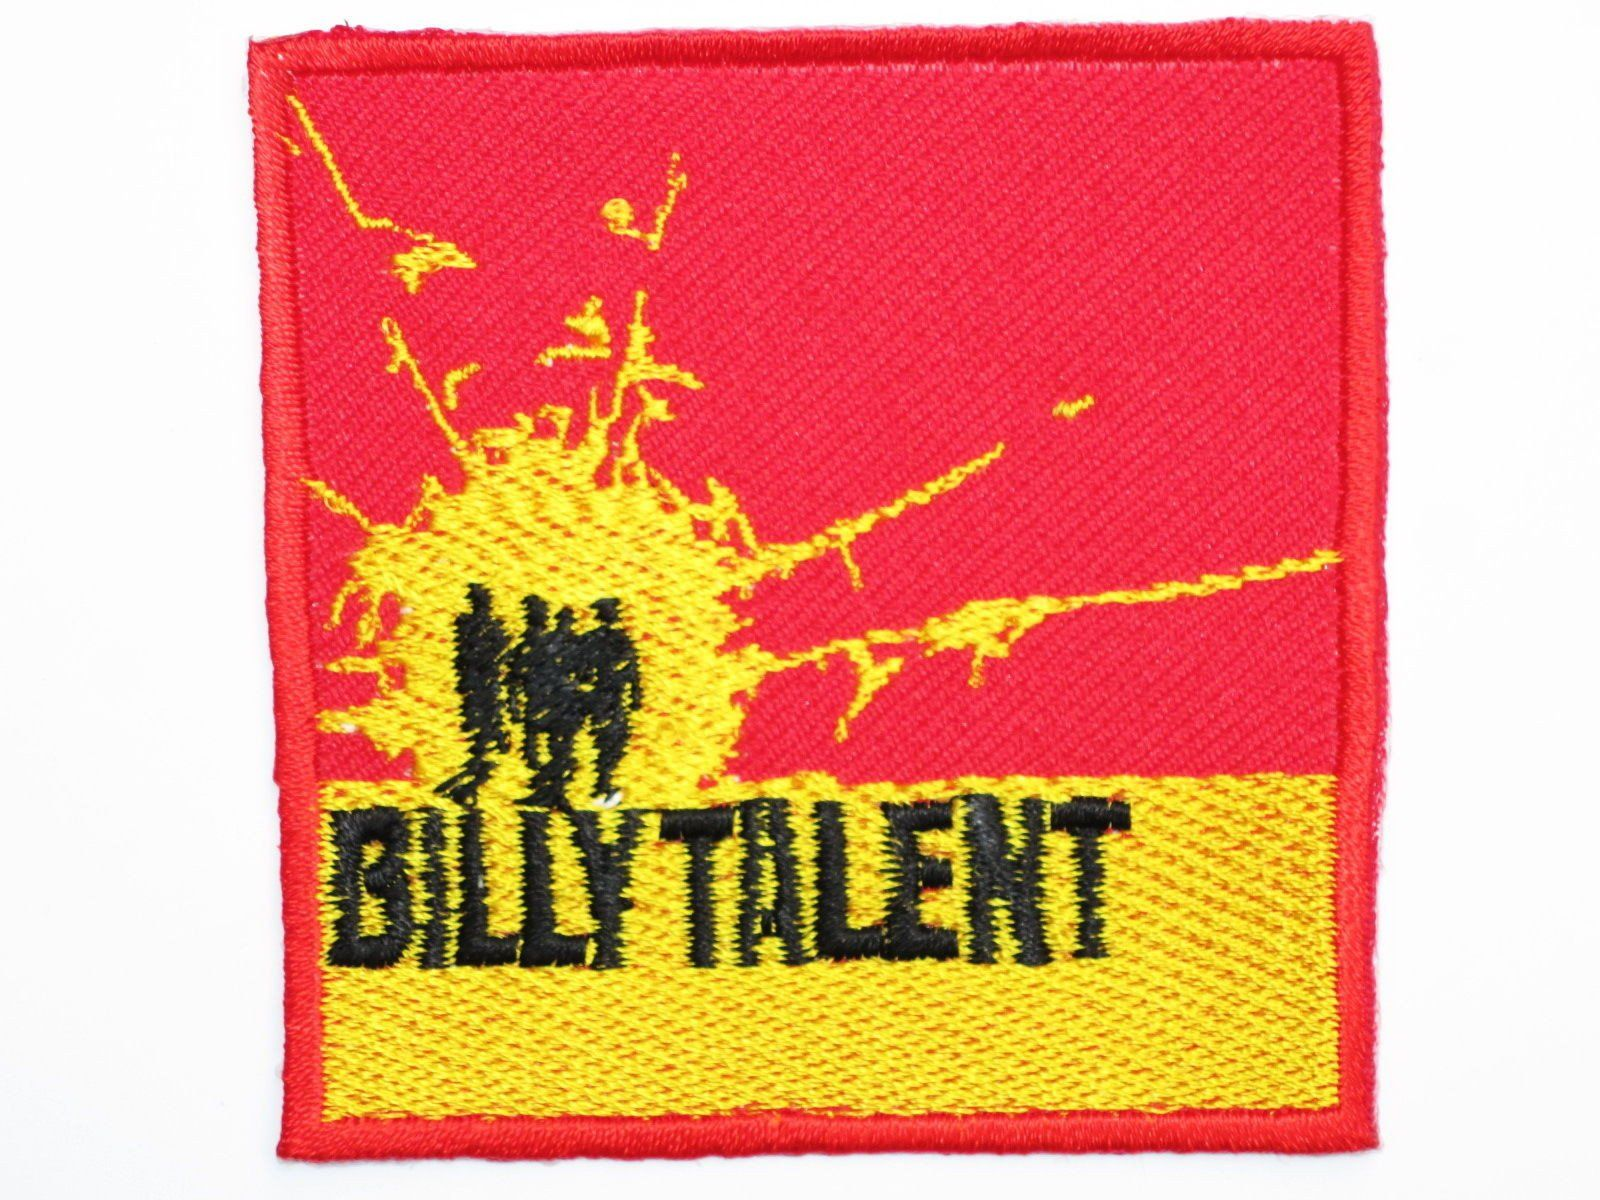 "BILLY TALENT Iron On Sew On Embroidered Patch 2.9""7.5cm - A Patch E Store"